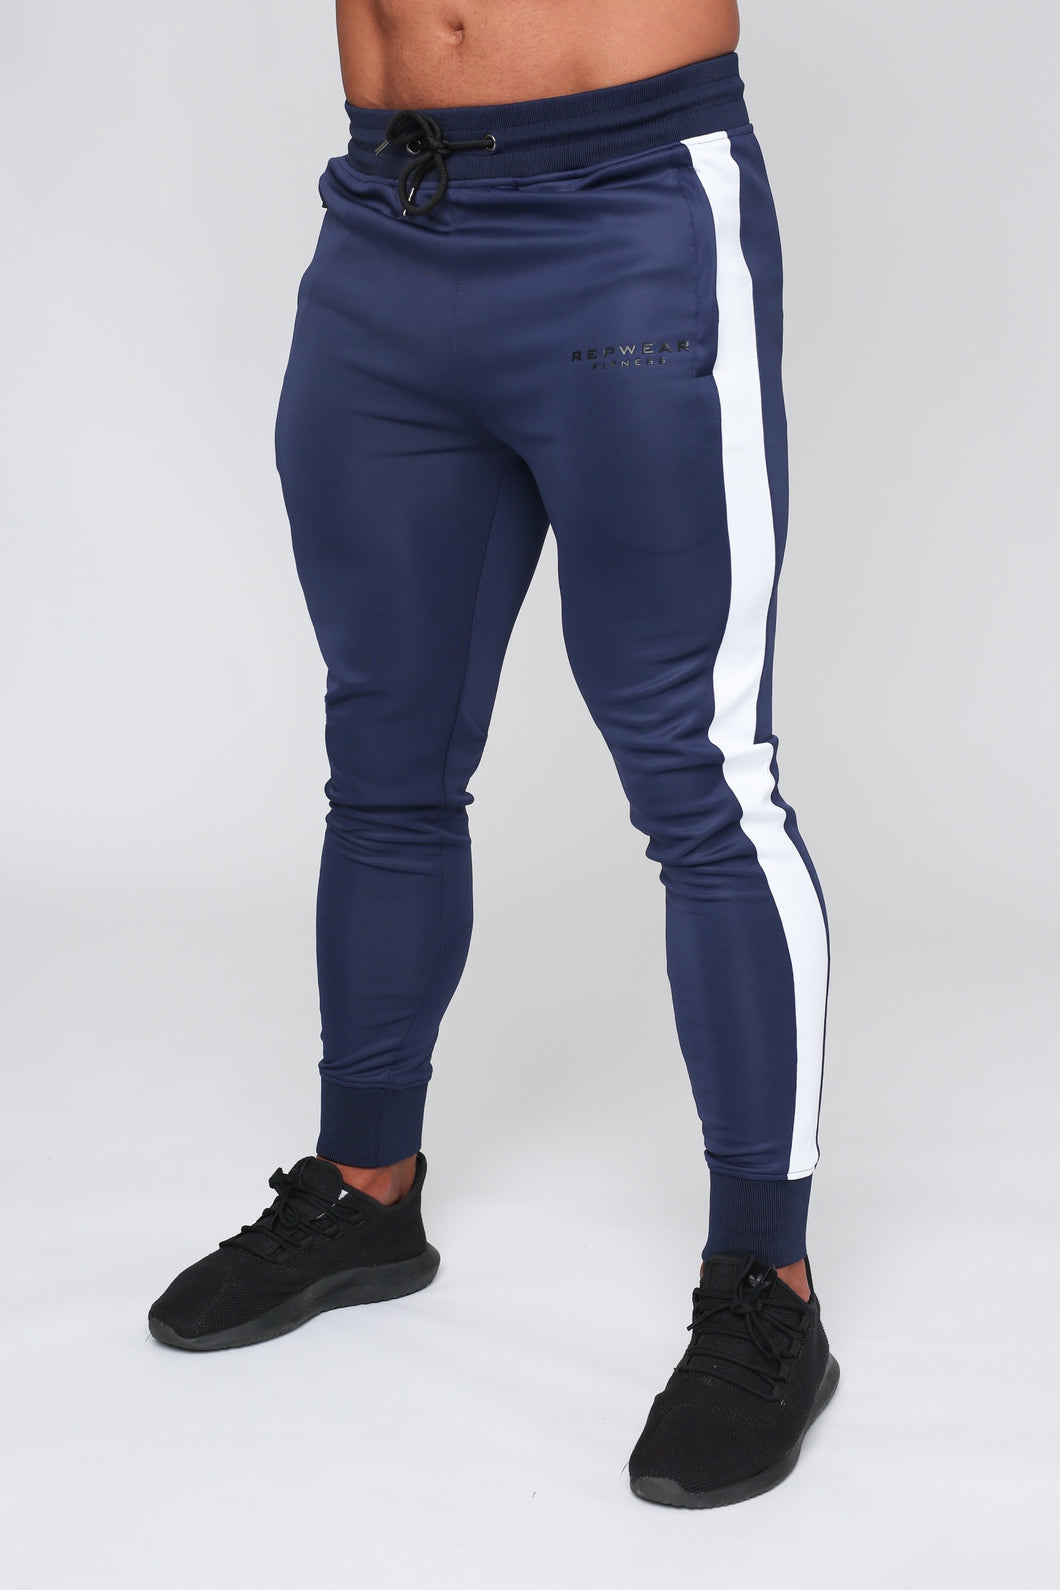 Repwear Fitness Original Poly Tracksuit Bottoms Navy Blue